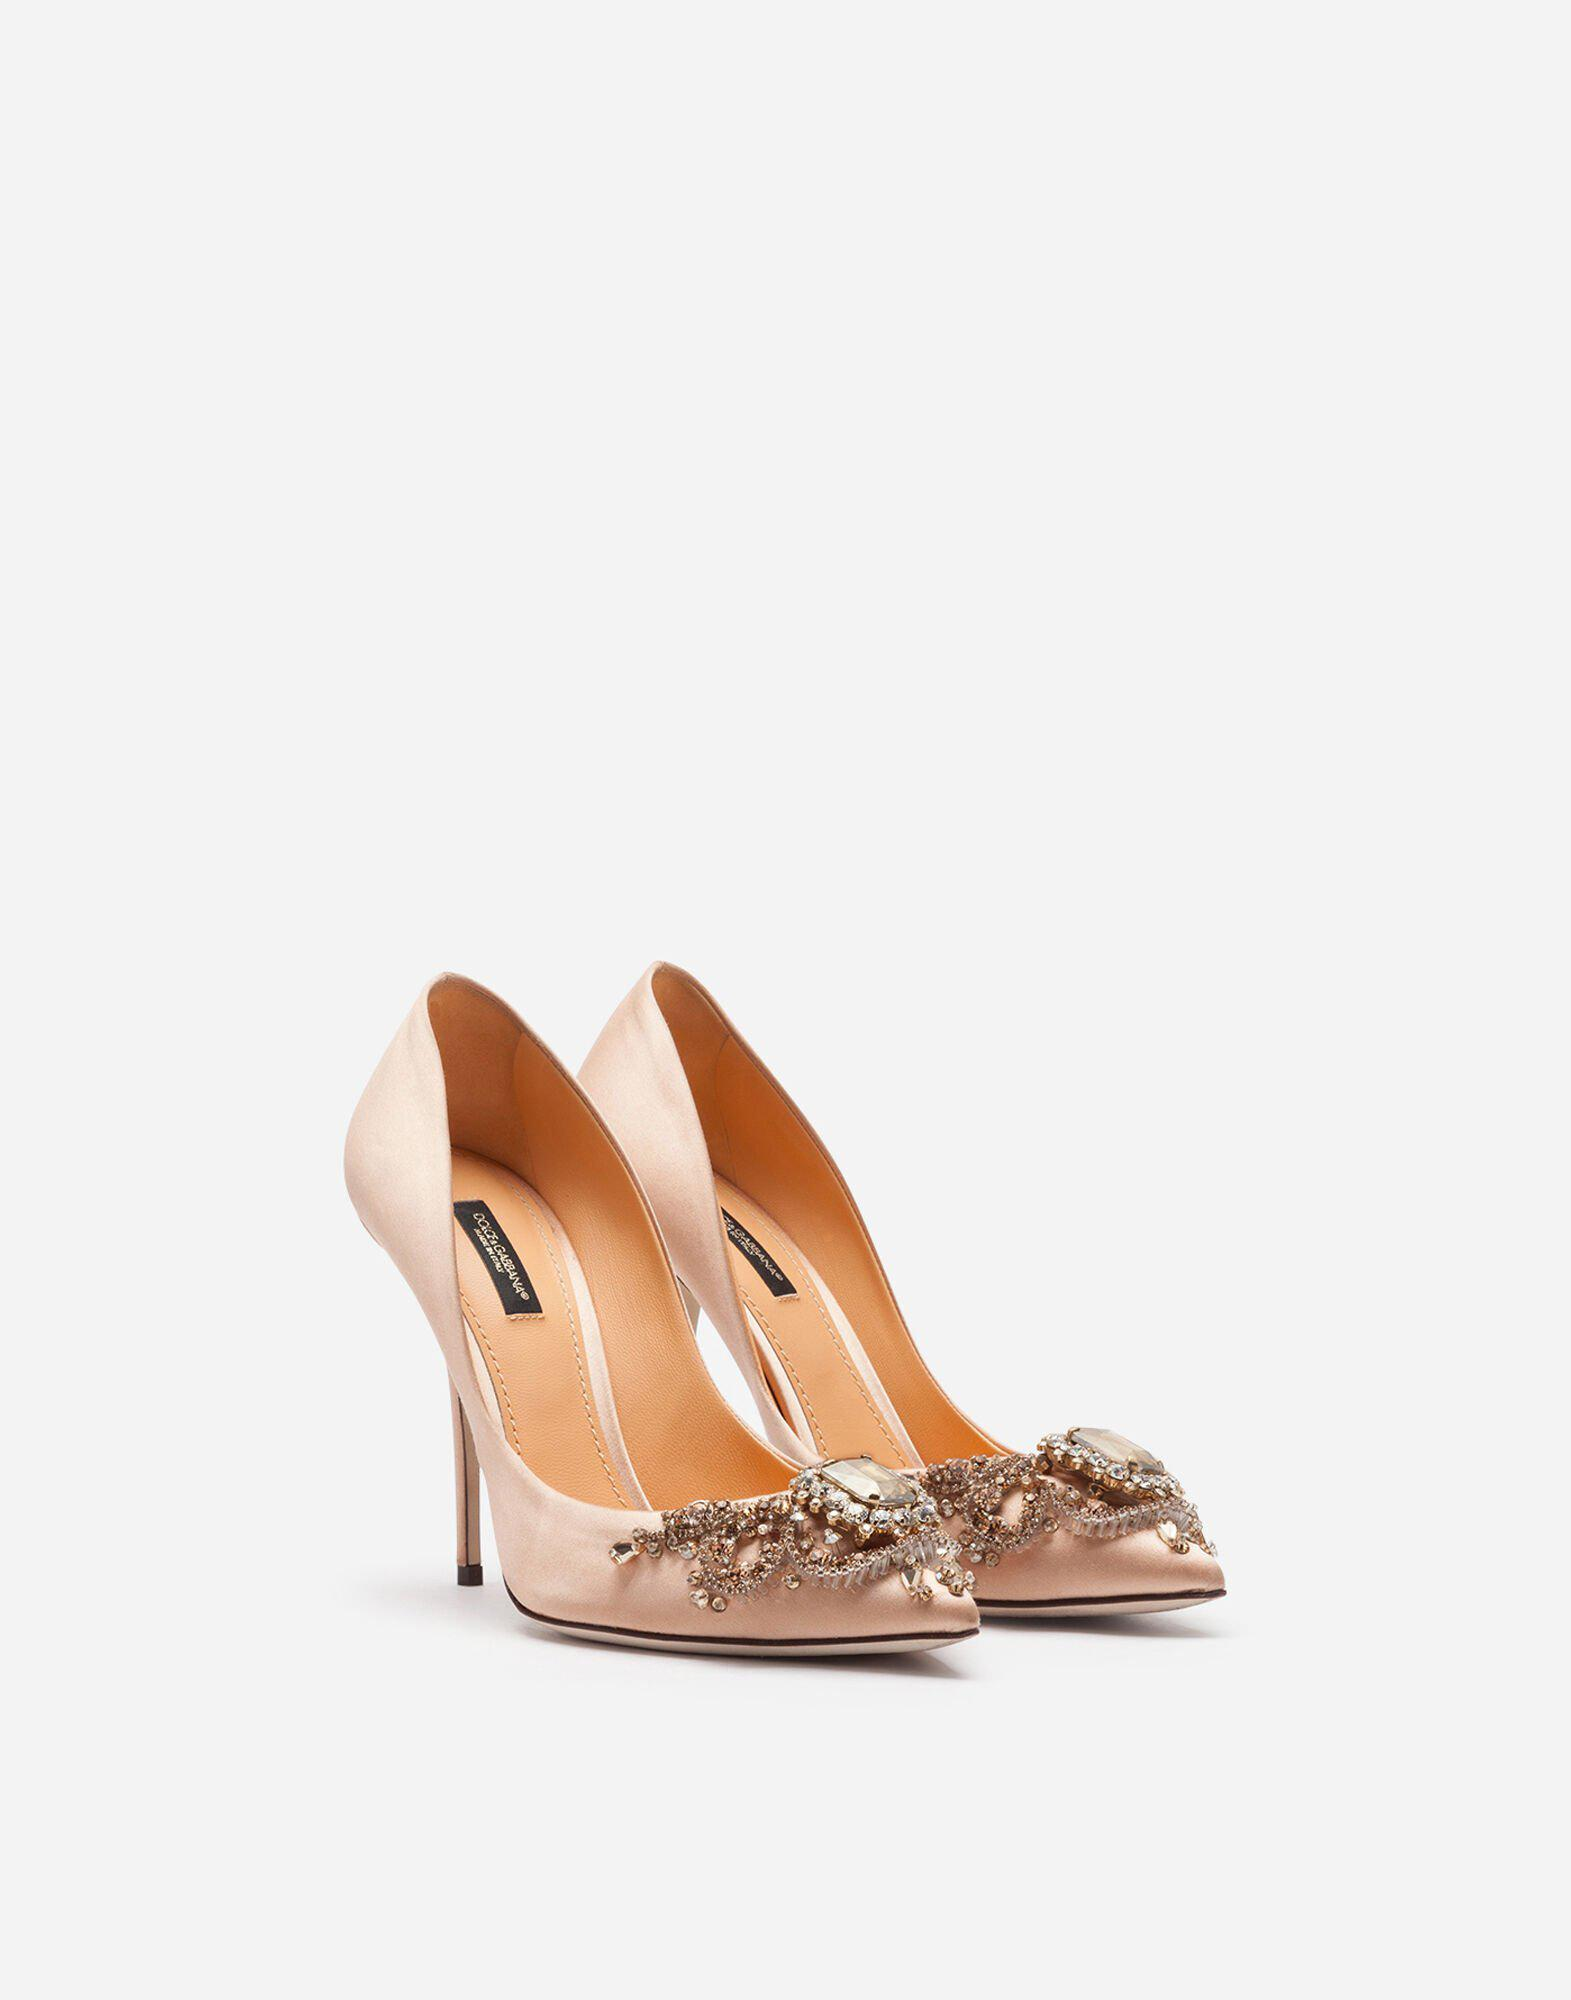 Satin pumps with bejeweled embellishment 1